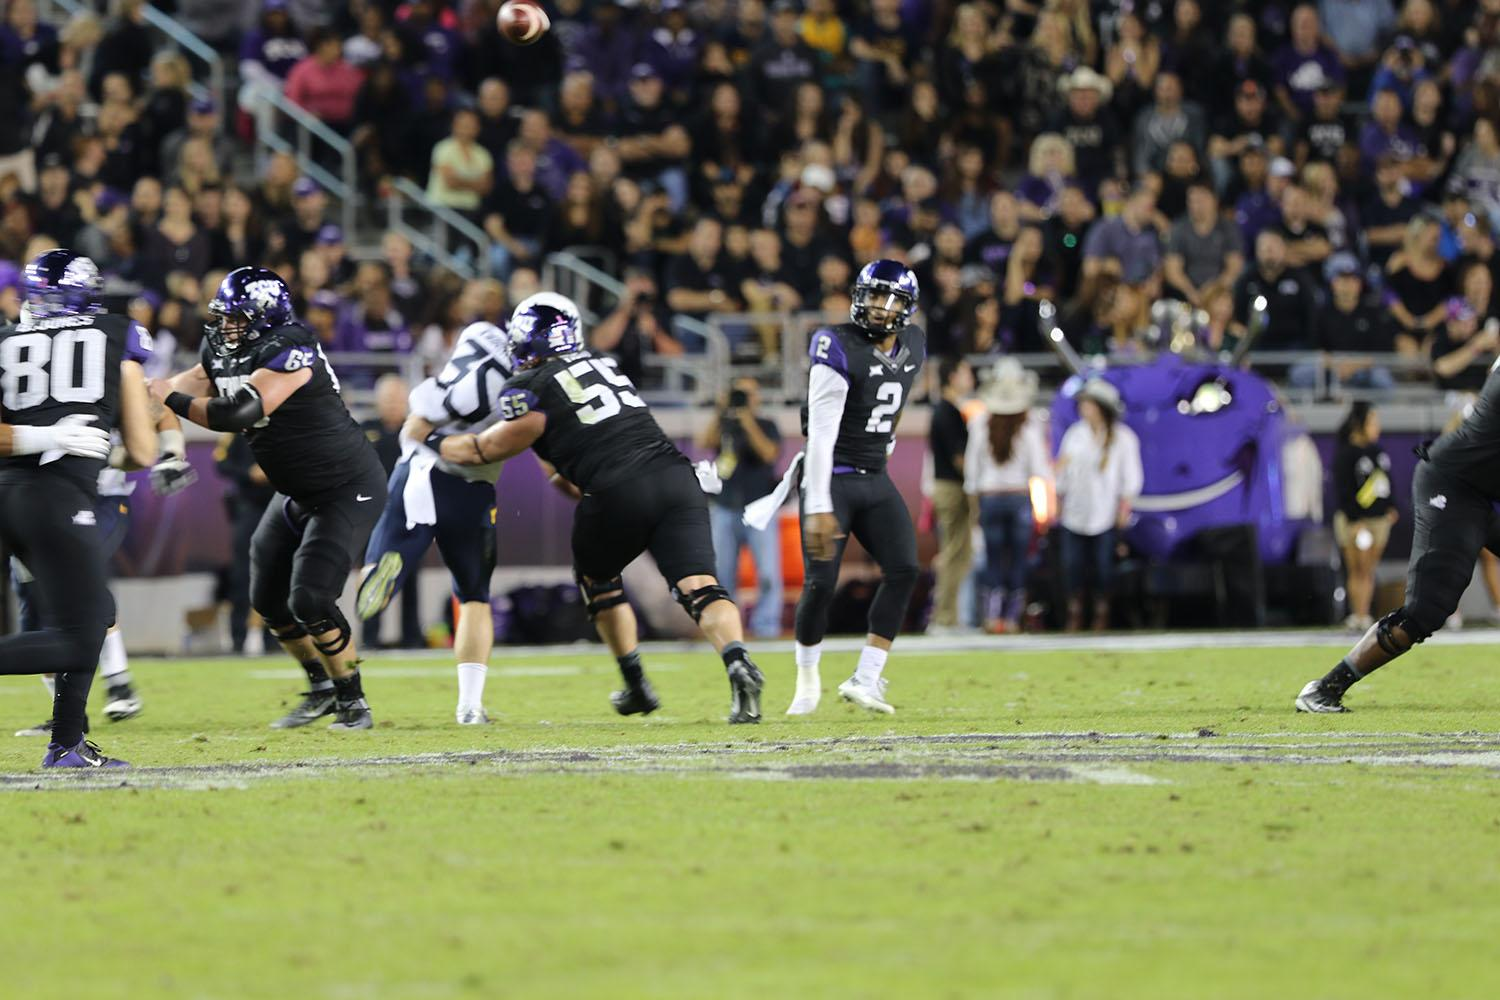 Trevone Boykin watches the ball sail during Thursday's victory over West Virginia